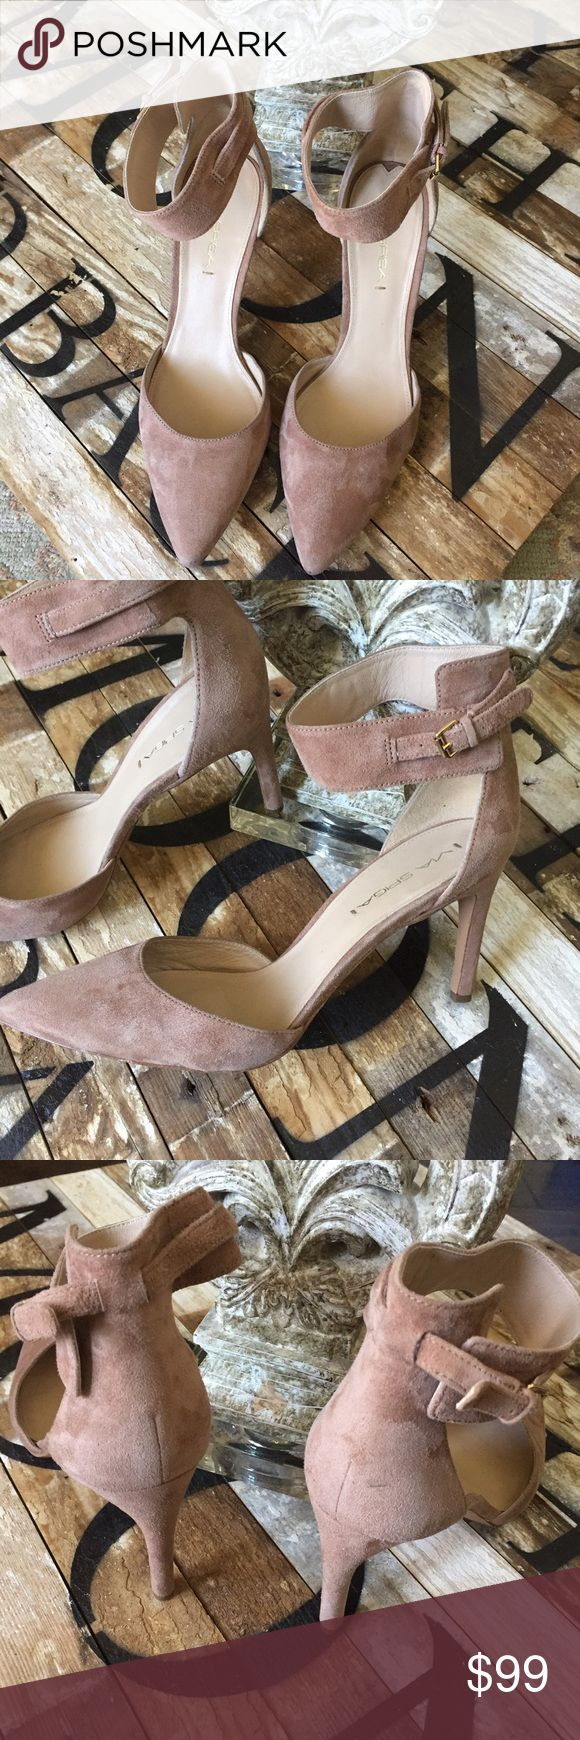 """Via Spiga Suede ankle strap Heels Stunning and classic is an understatement. WORN ONCE! Suede Via Spiga fashionable pointy toe pump with adjustable ankle strap with buckle closure. """"Idabelle"""" model. Perfect  3 1/2"""" suede covered heel. Via Spiga Shoes Heels"""